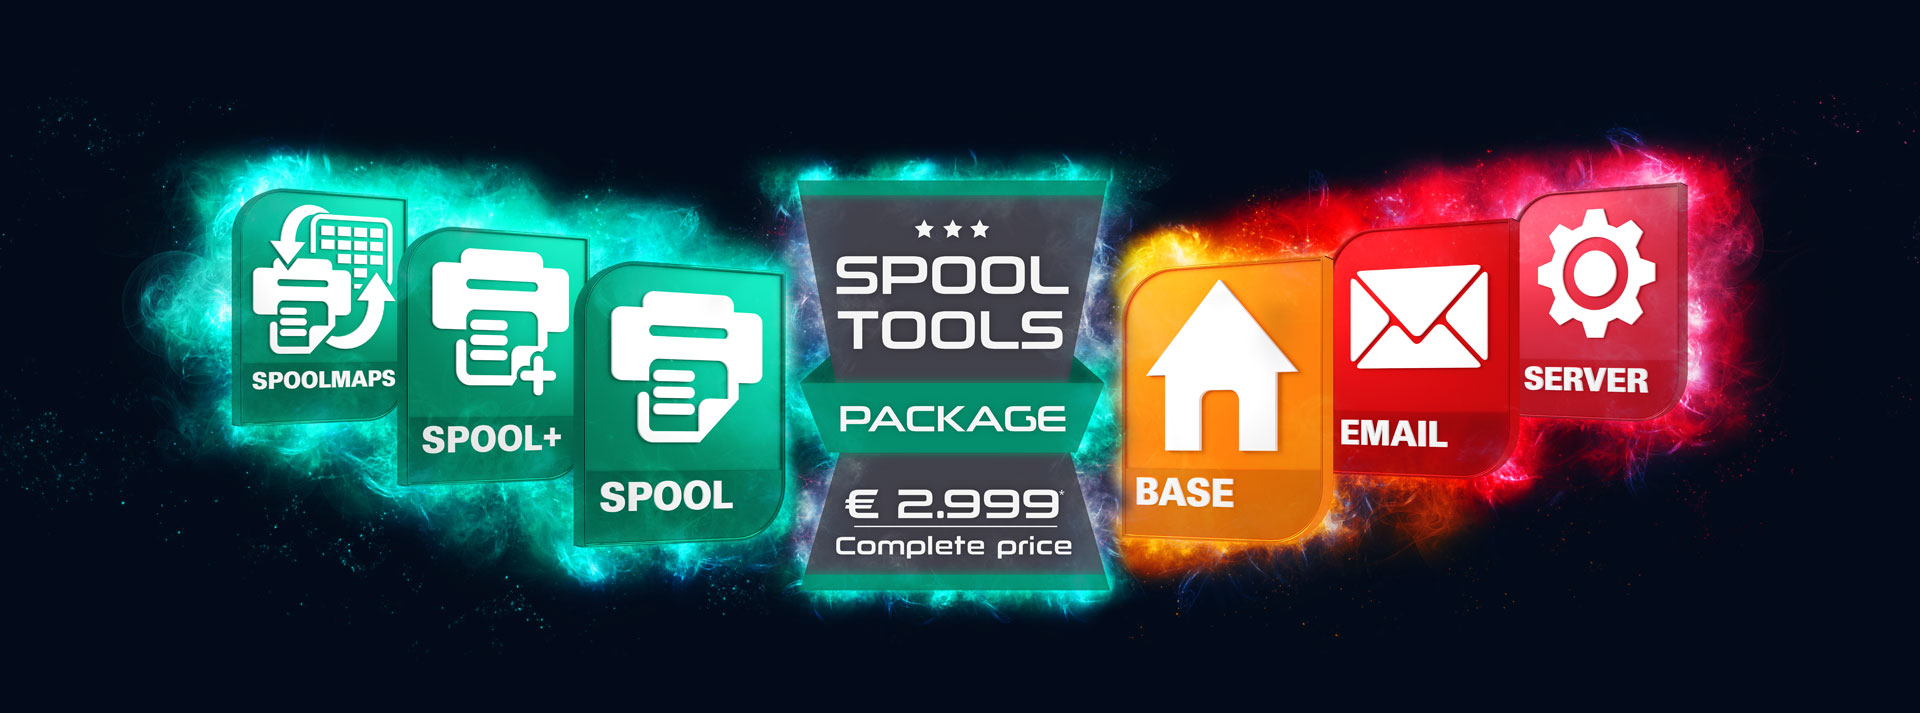 SpoolTools Banner